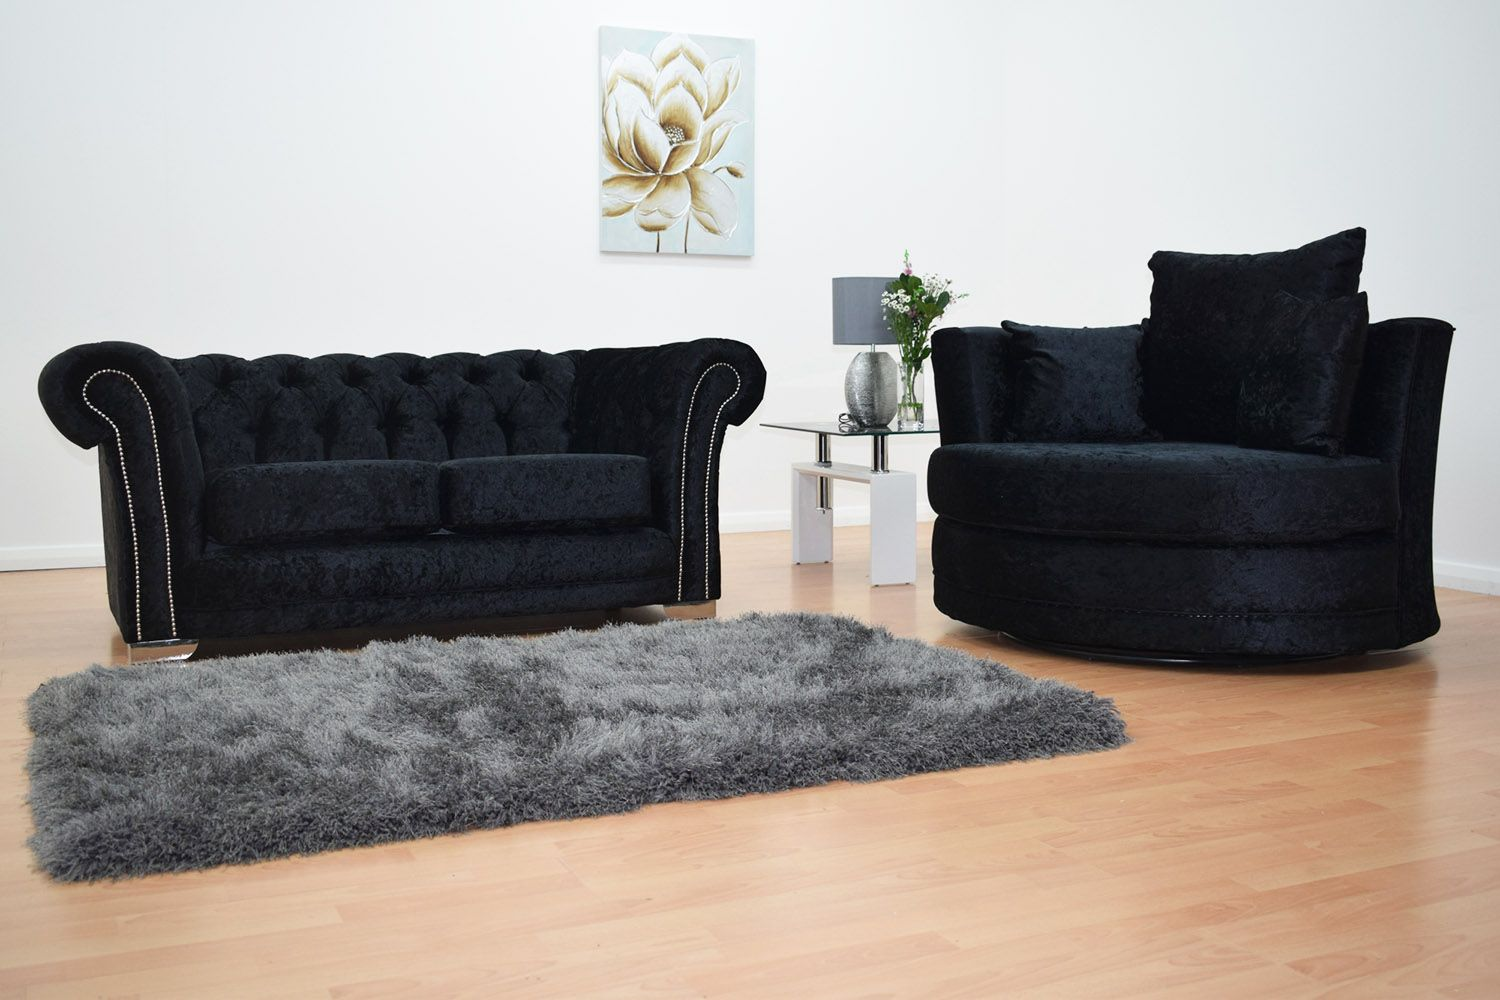 Chesterfield 2 Seater Sofa & Cuddle Chair